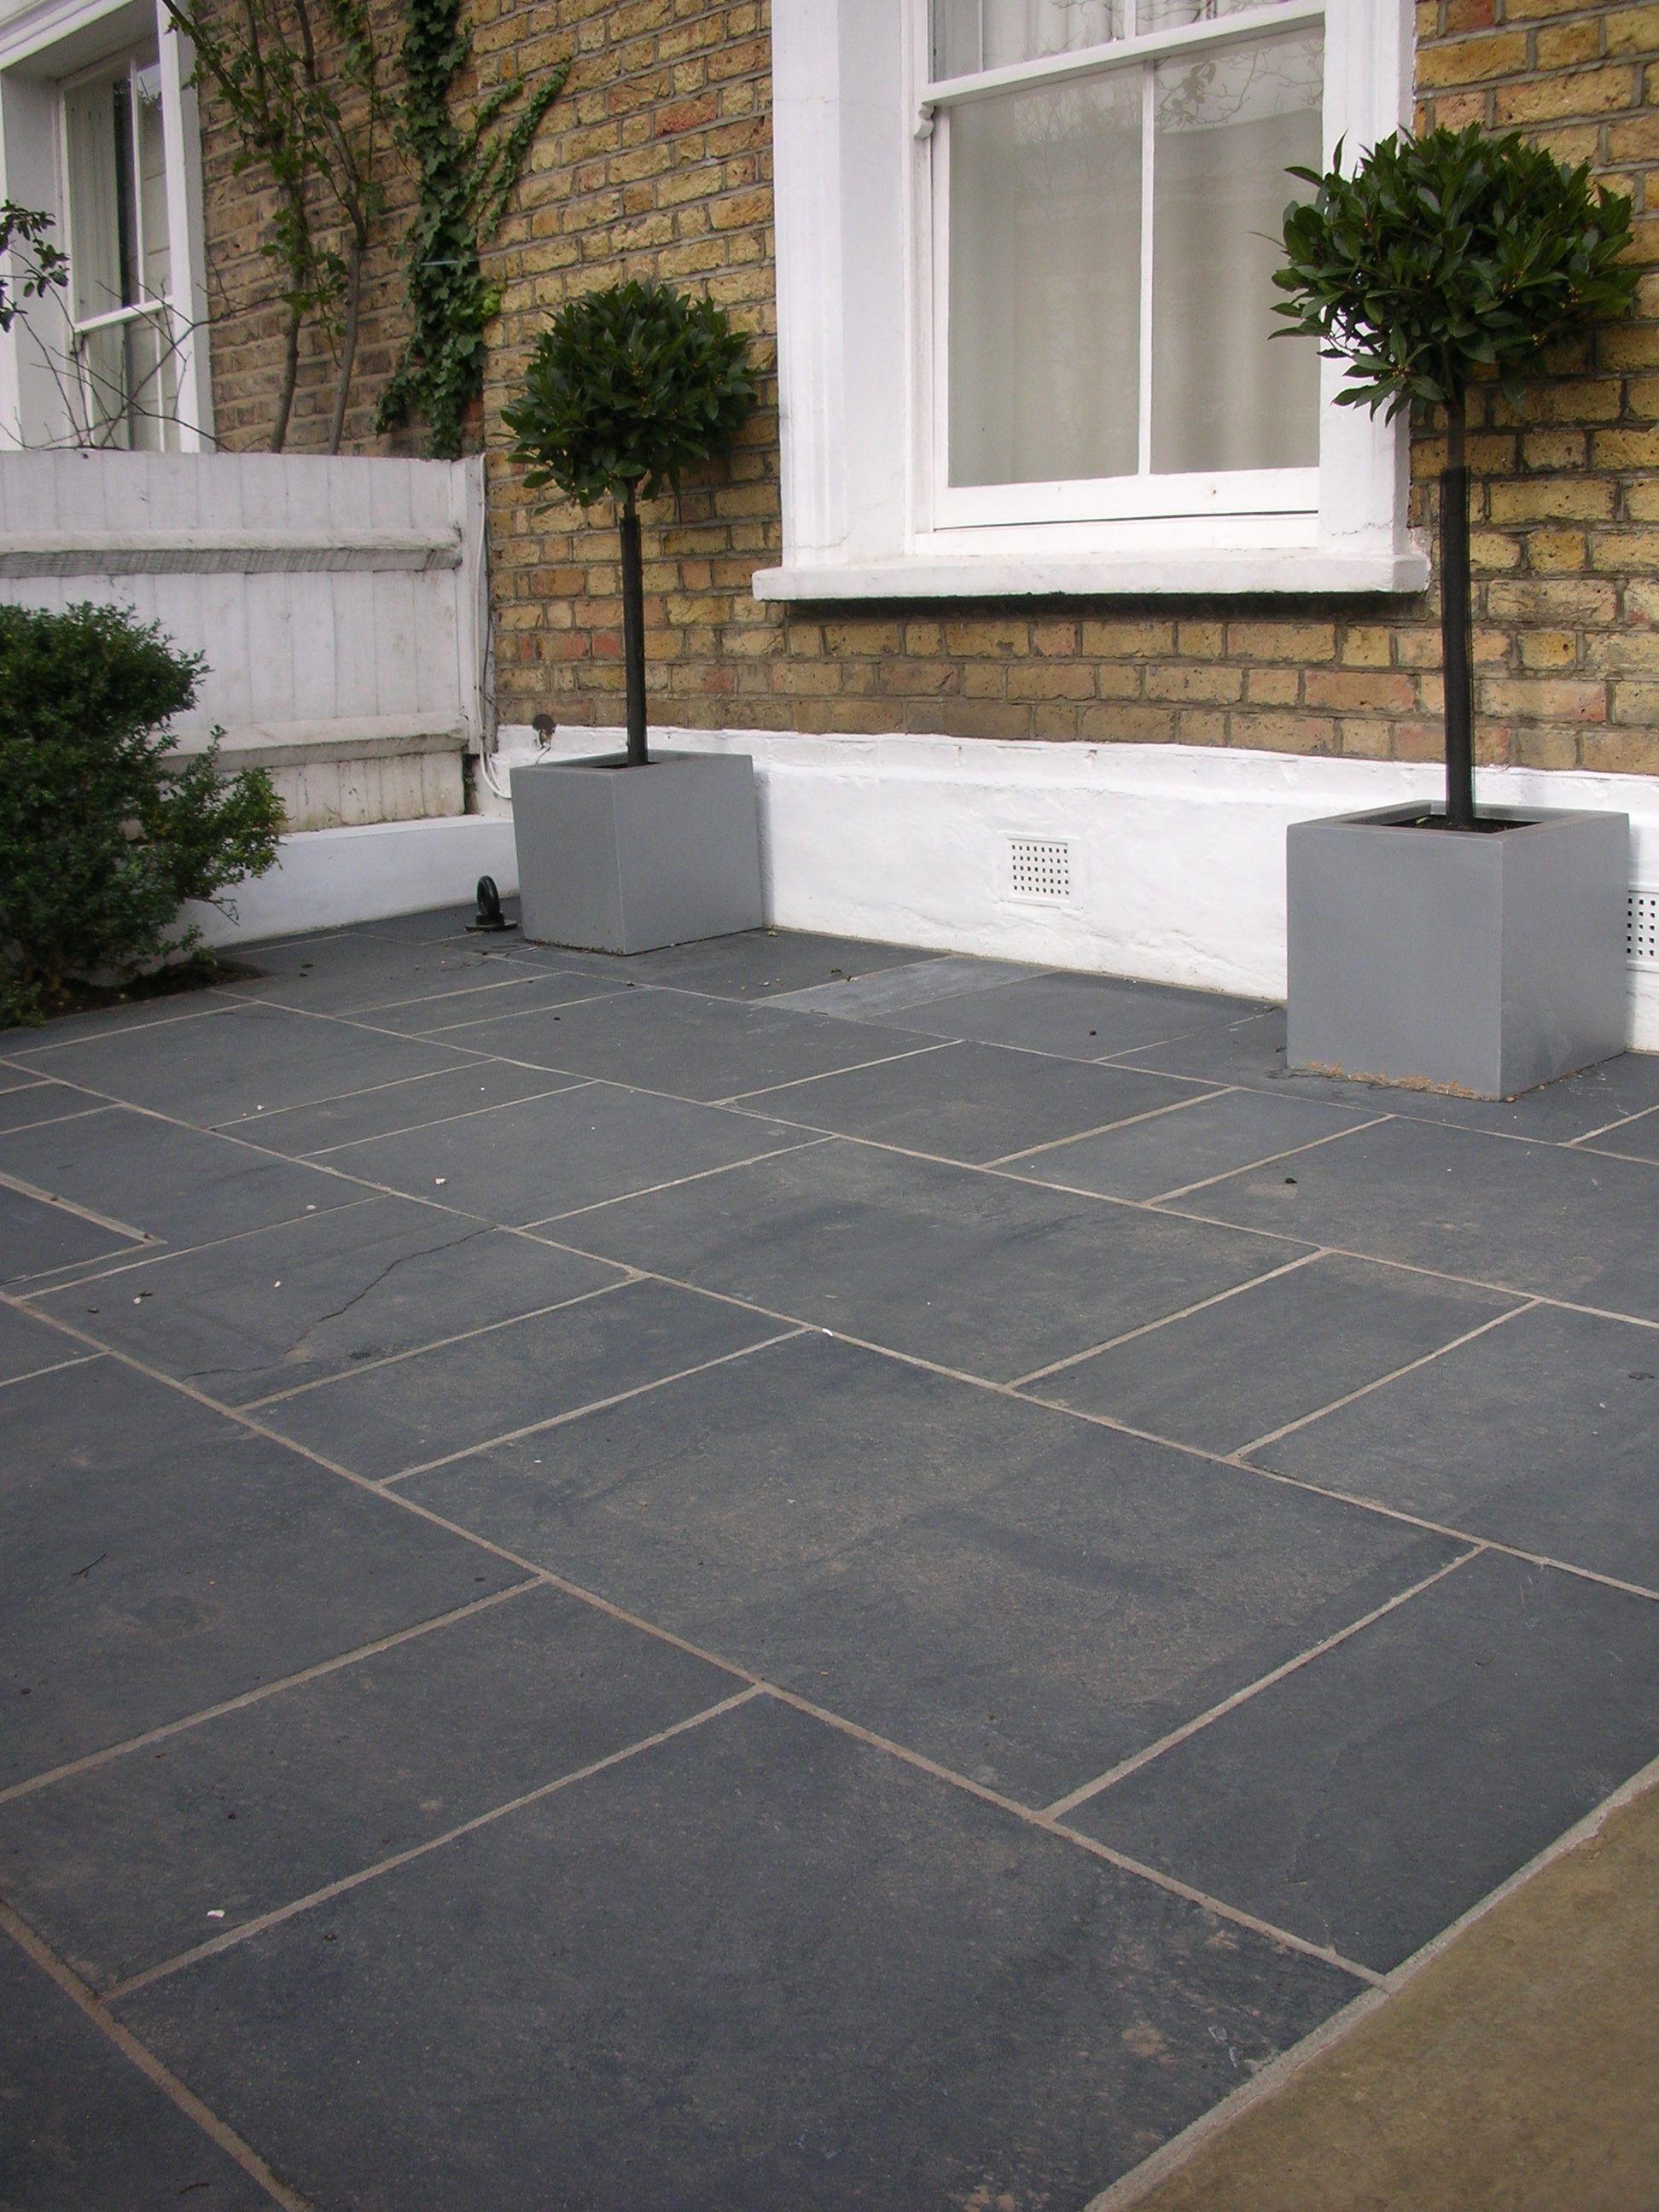 Garden Design Concrete Driveway Tegula Block Paving Indian From Paved Front  Garden Designs, Source: